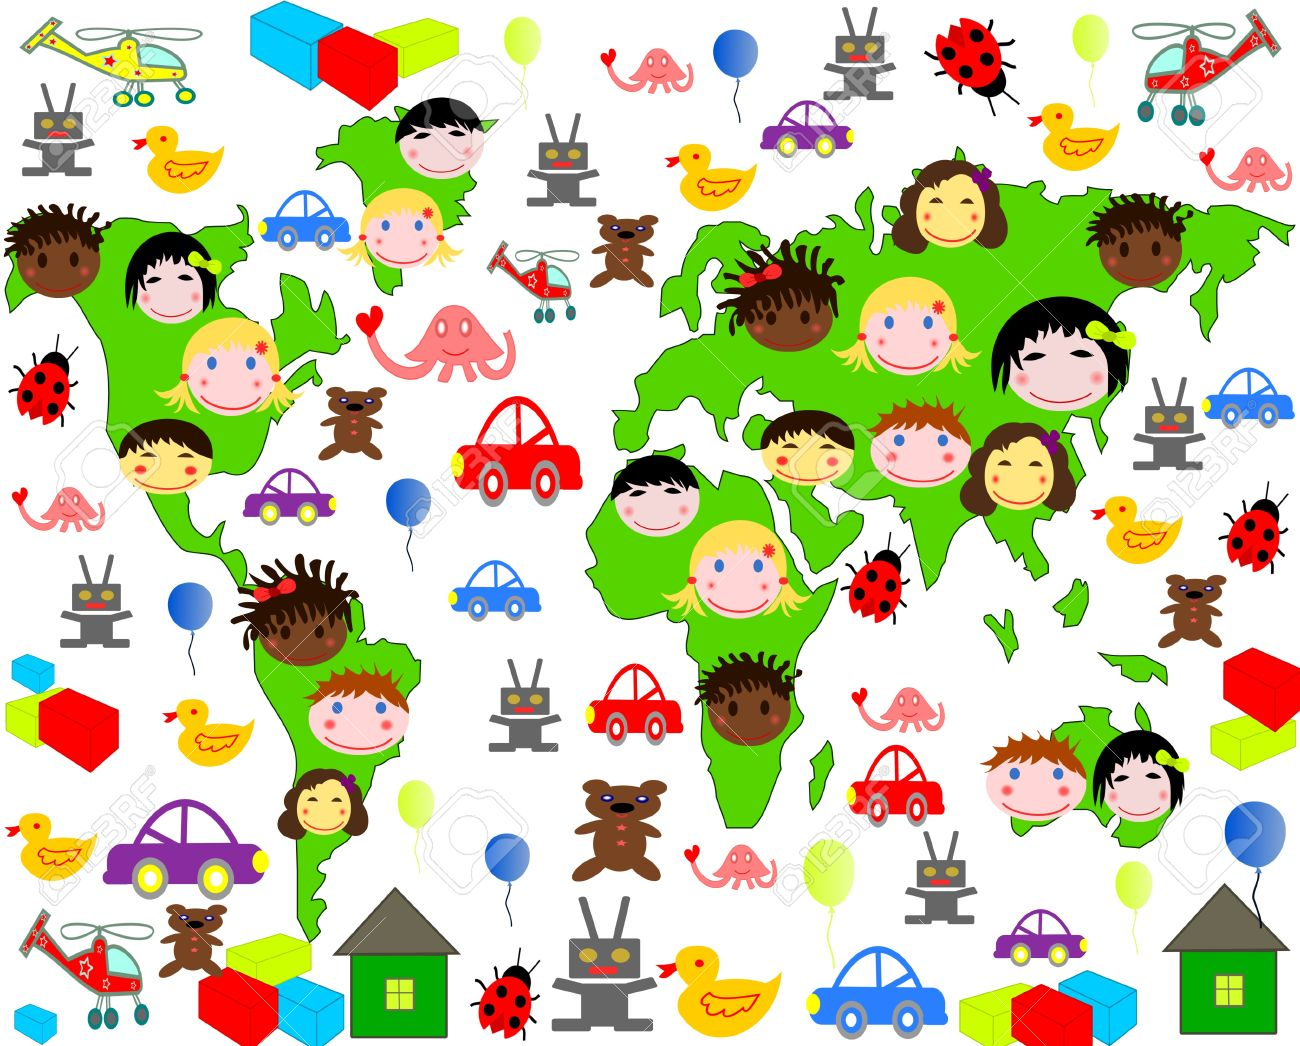 persons of children of different races on the map of the world